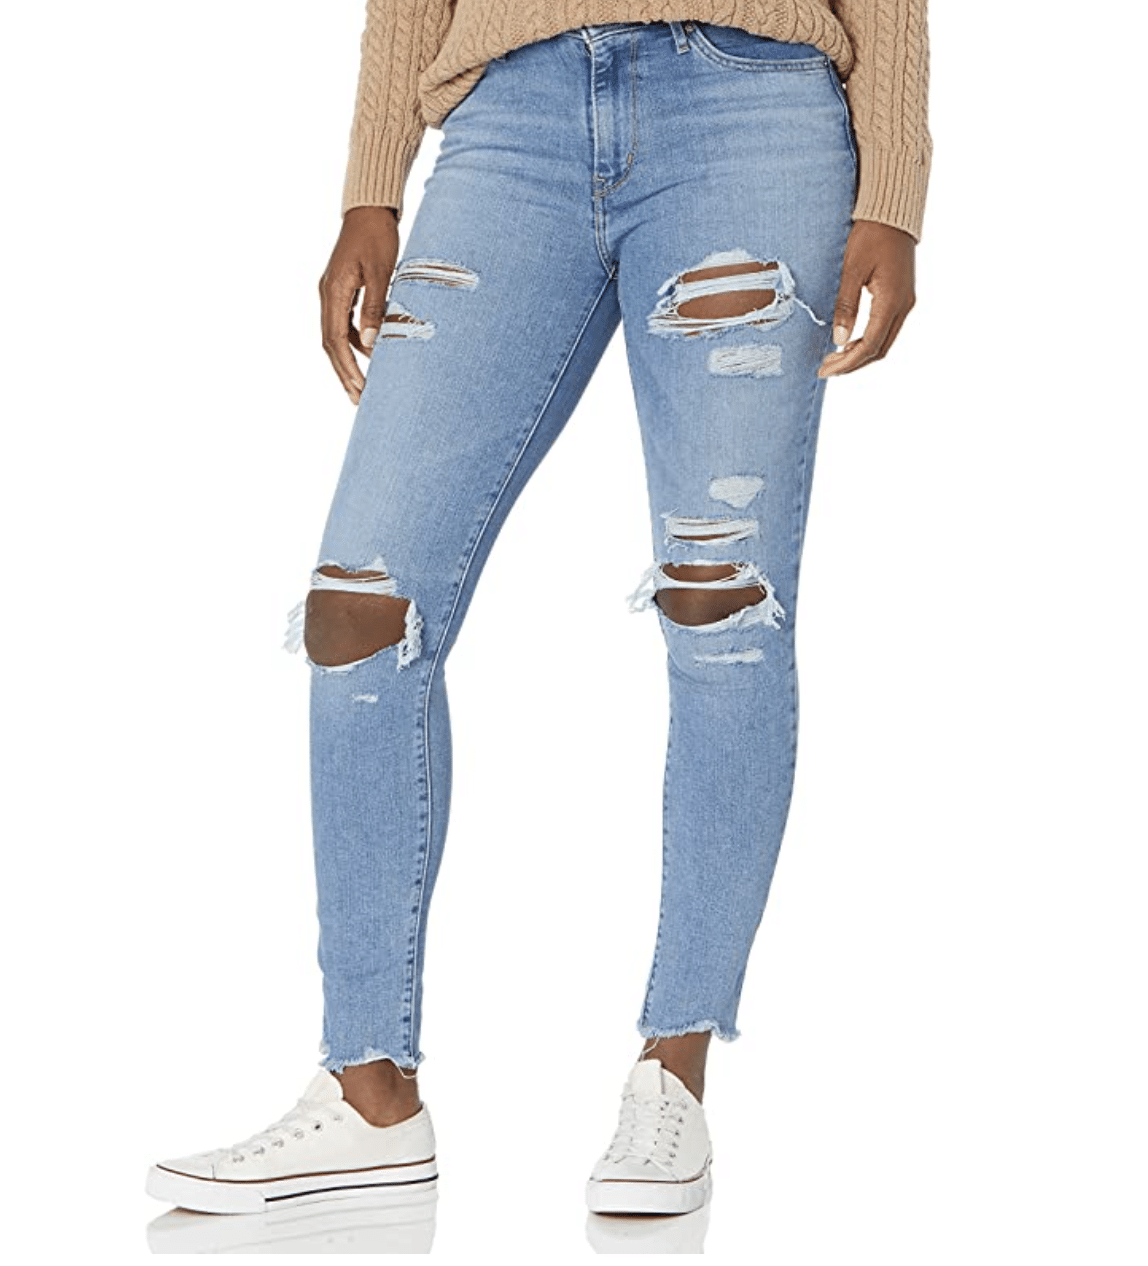 gifts-for-13-year-old-girls-jeans